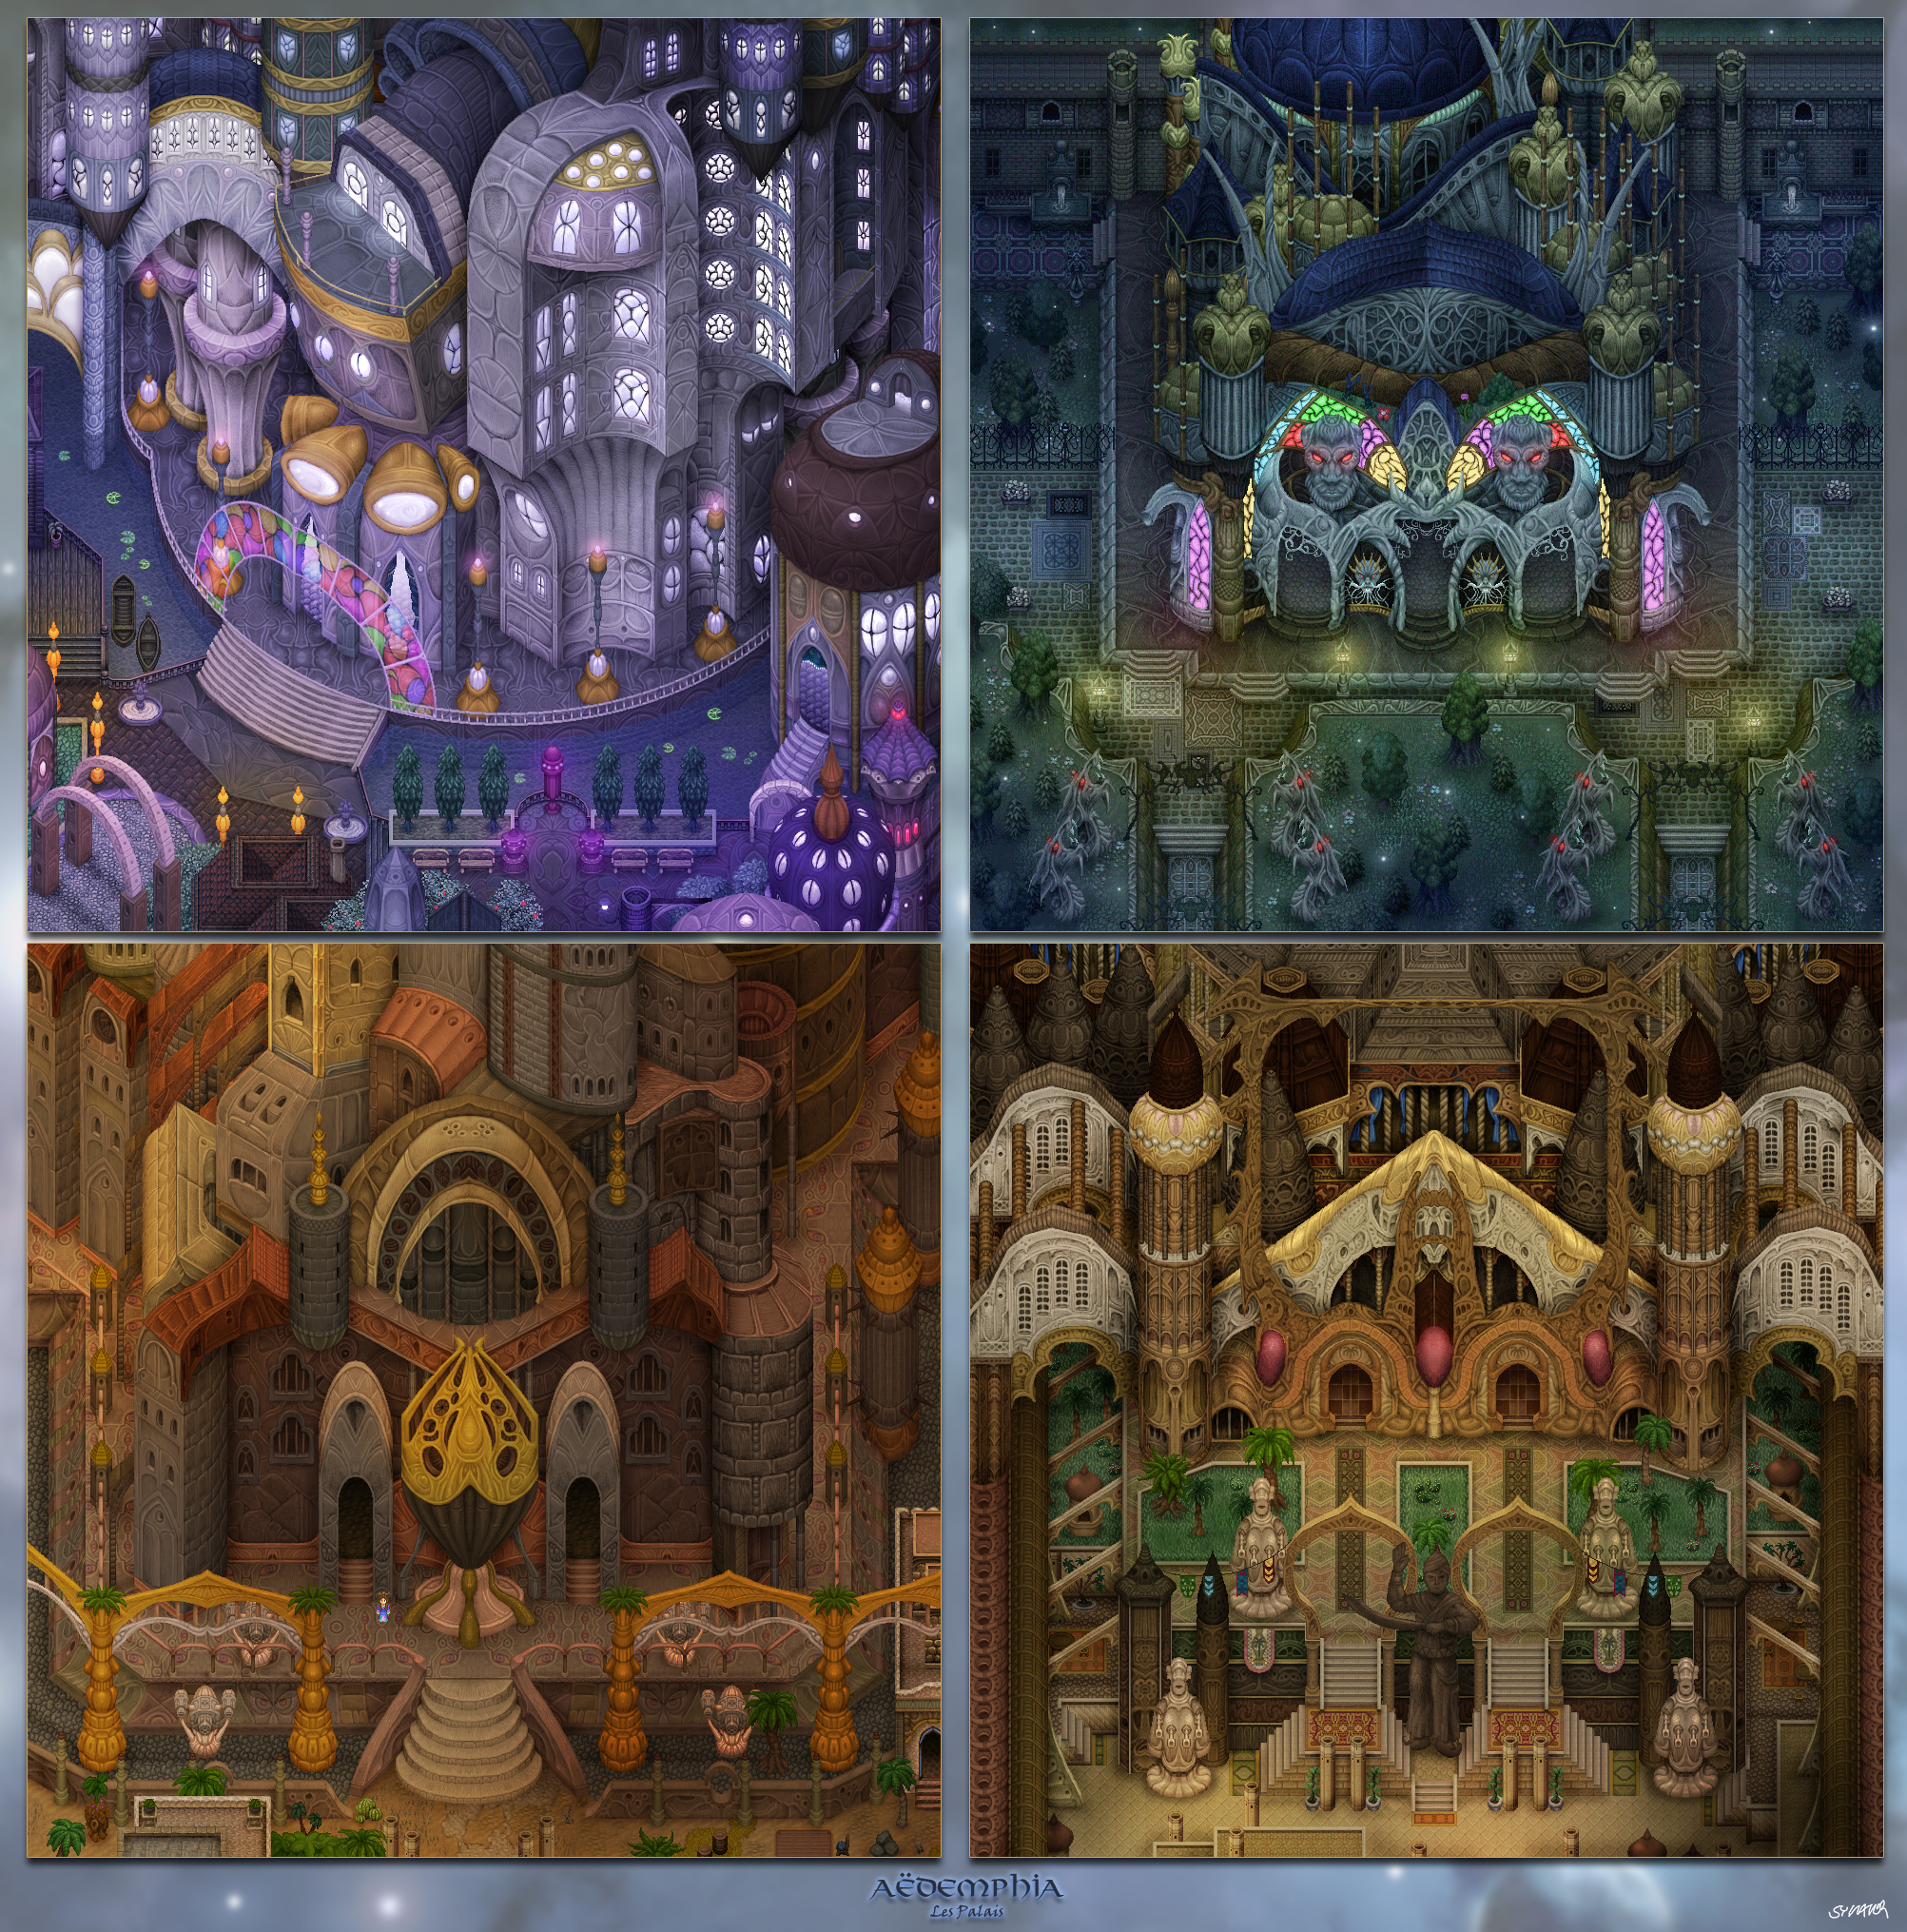 http://fc04.deviantart.net/fs42/f/2009/096/2/1/Aedemphia_Palaces_by_Sylvanor.png